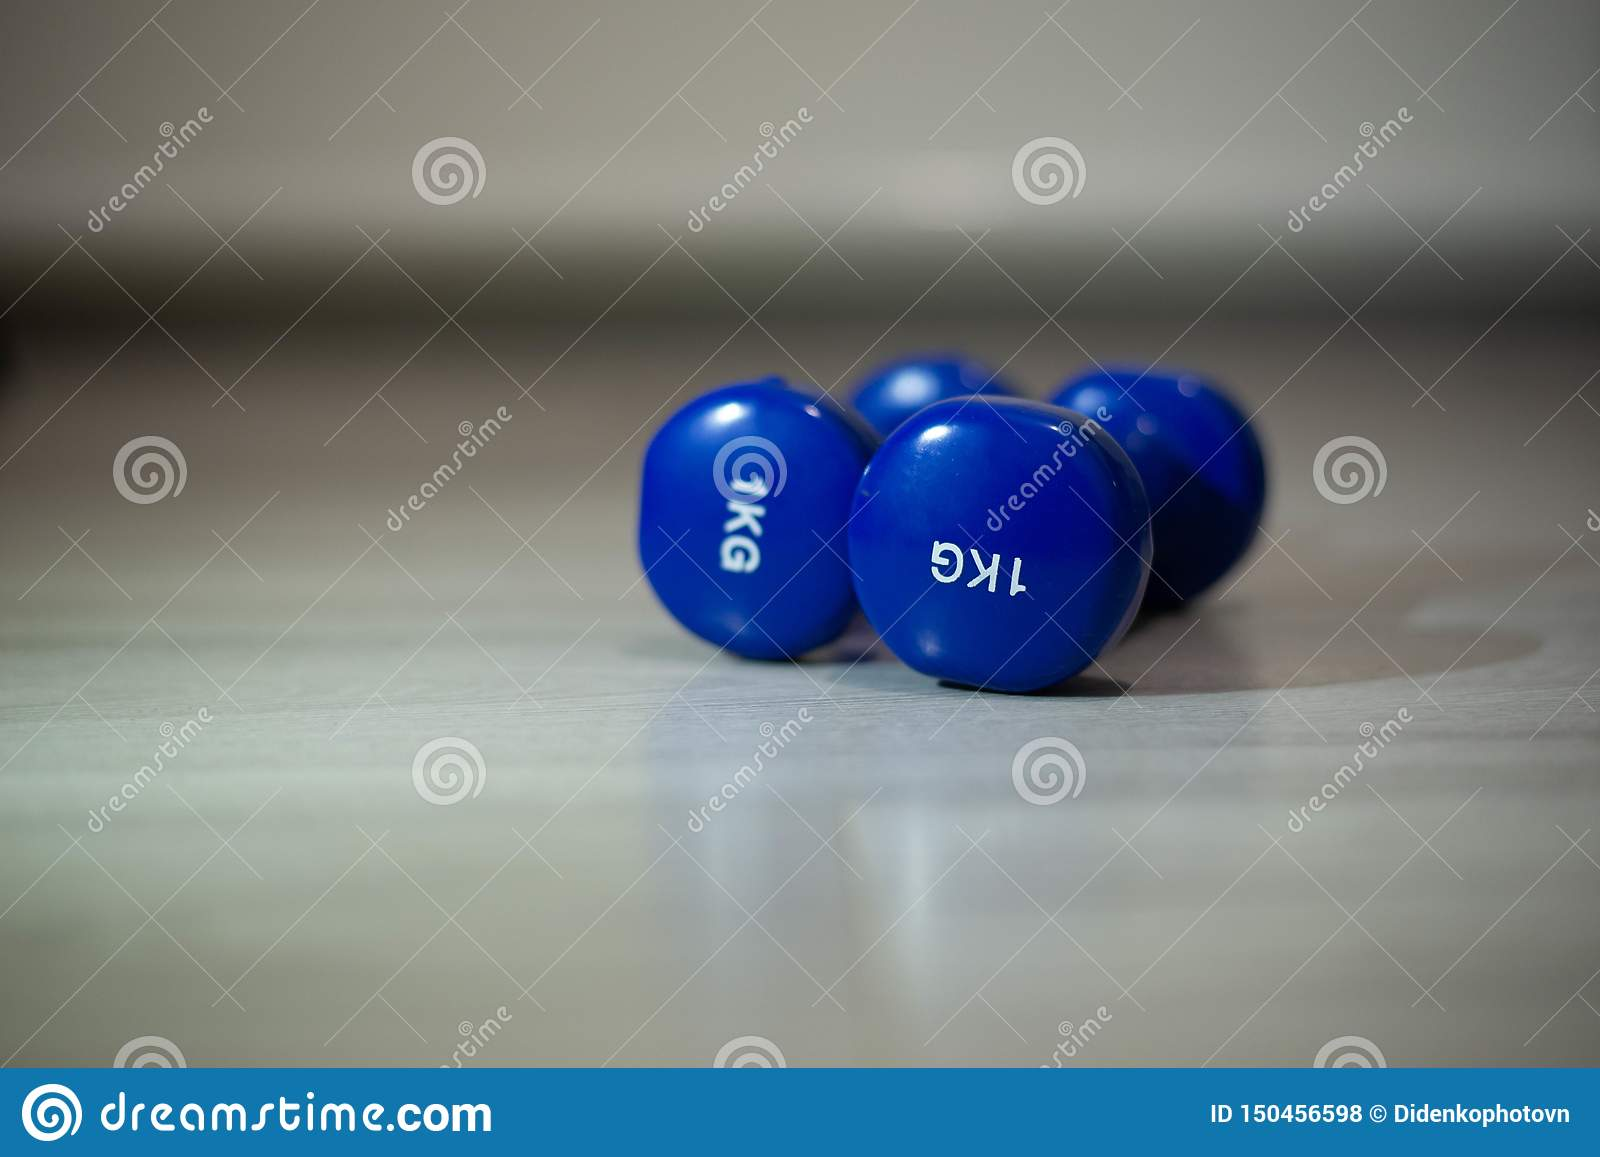 Blue dumbbells on the floor